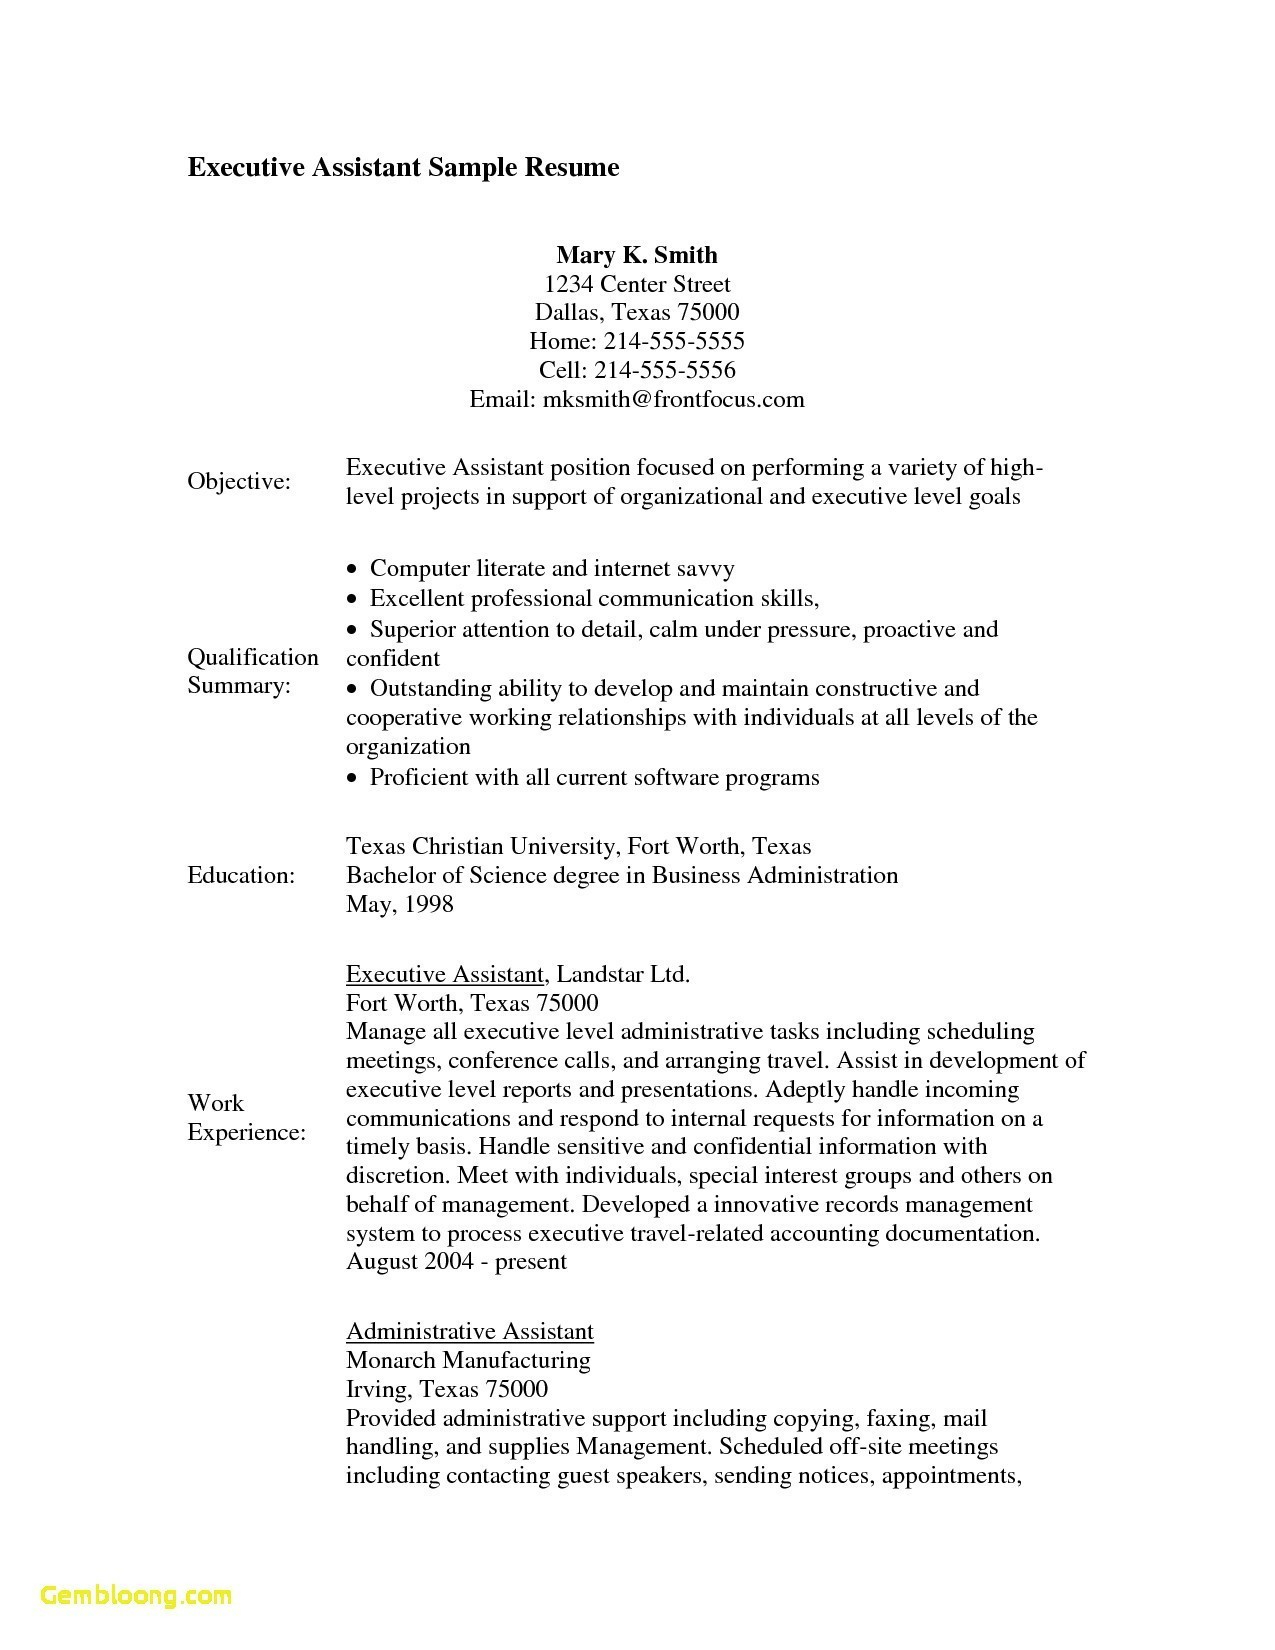 Physician assistant Resume Template - Medical assistant Resume New Inspirational Medical assistant Resumes